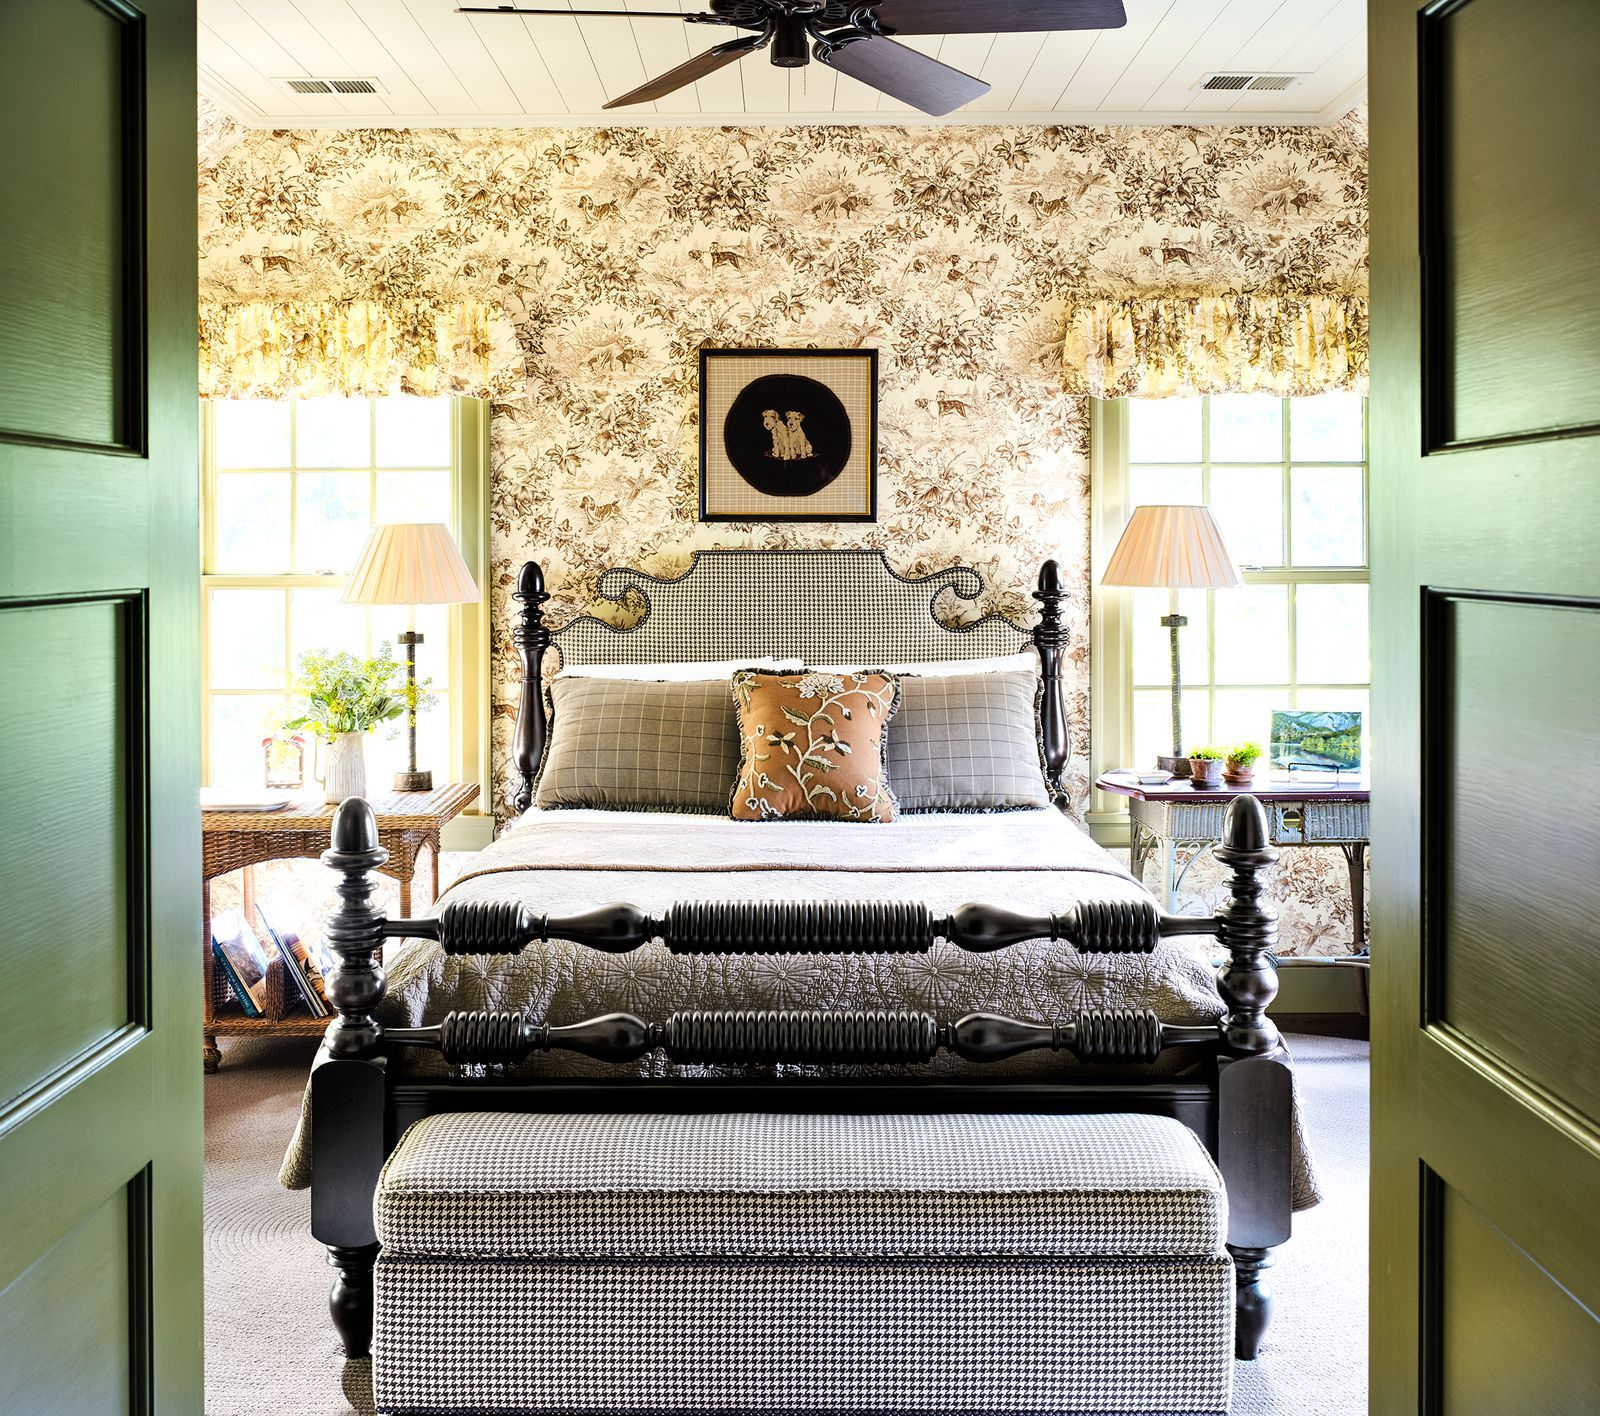 26 Mediterranean Bedroom Design Ideas: These Bold Wallpaper Ideas Will Completely Transform Your